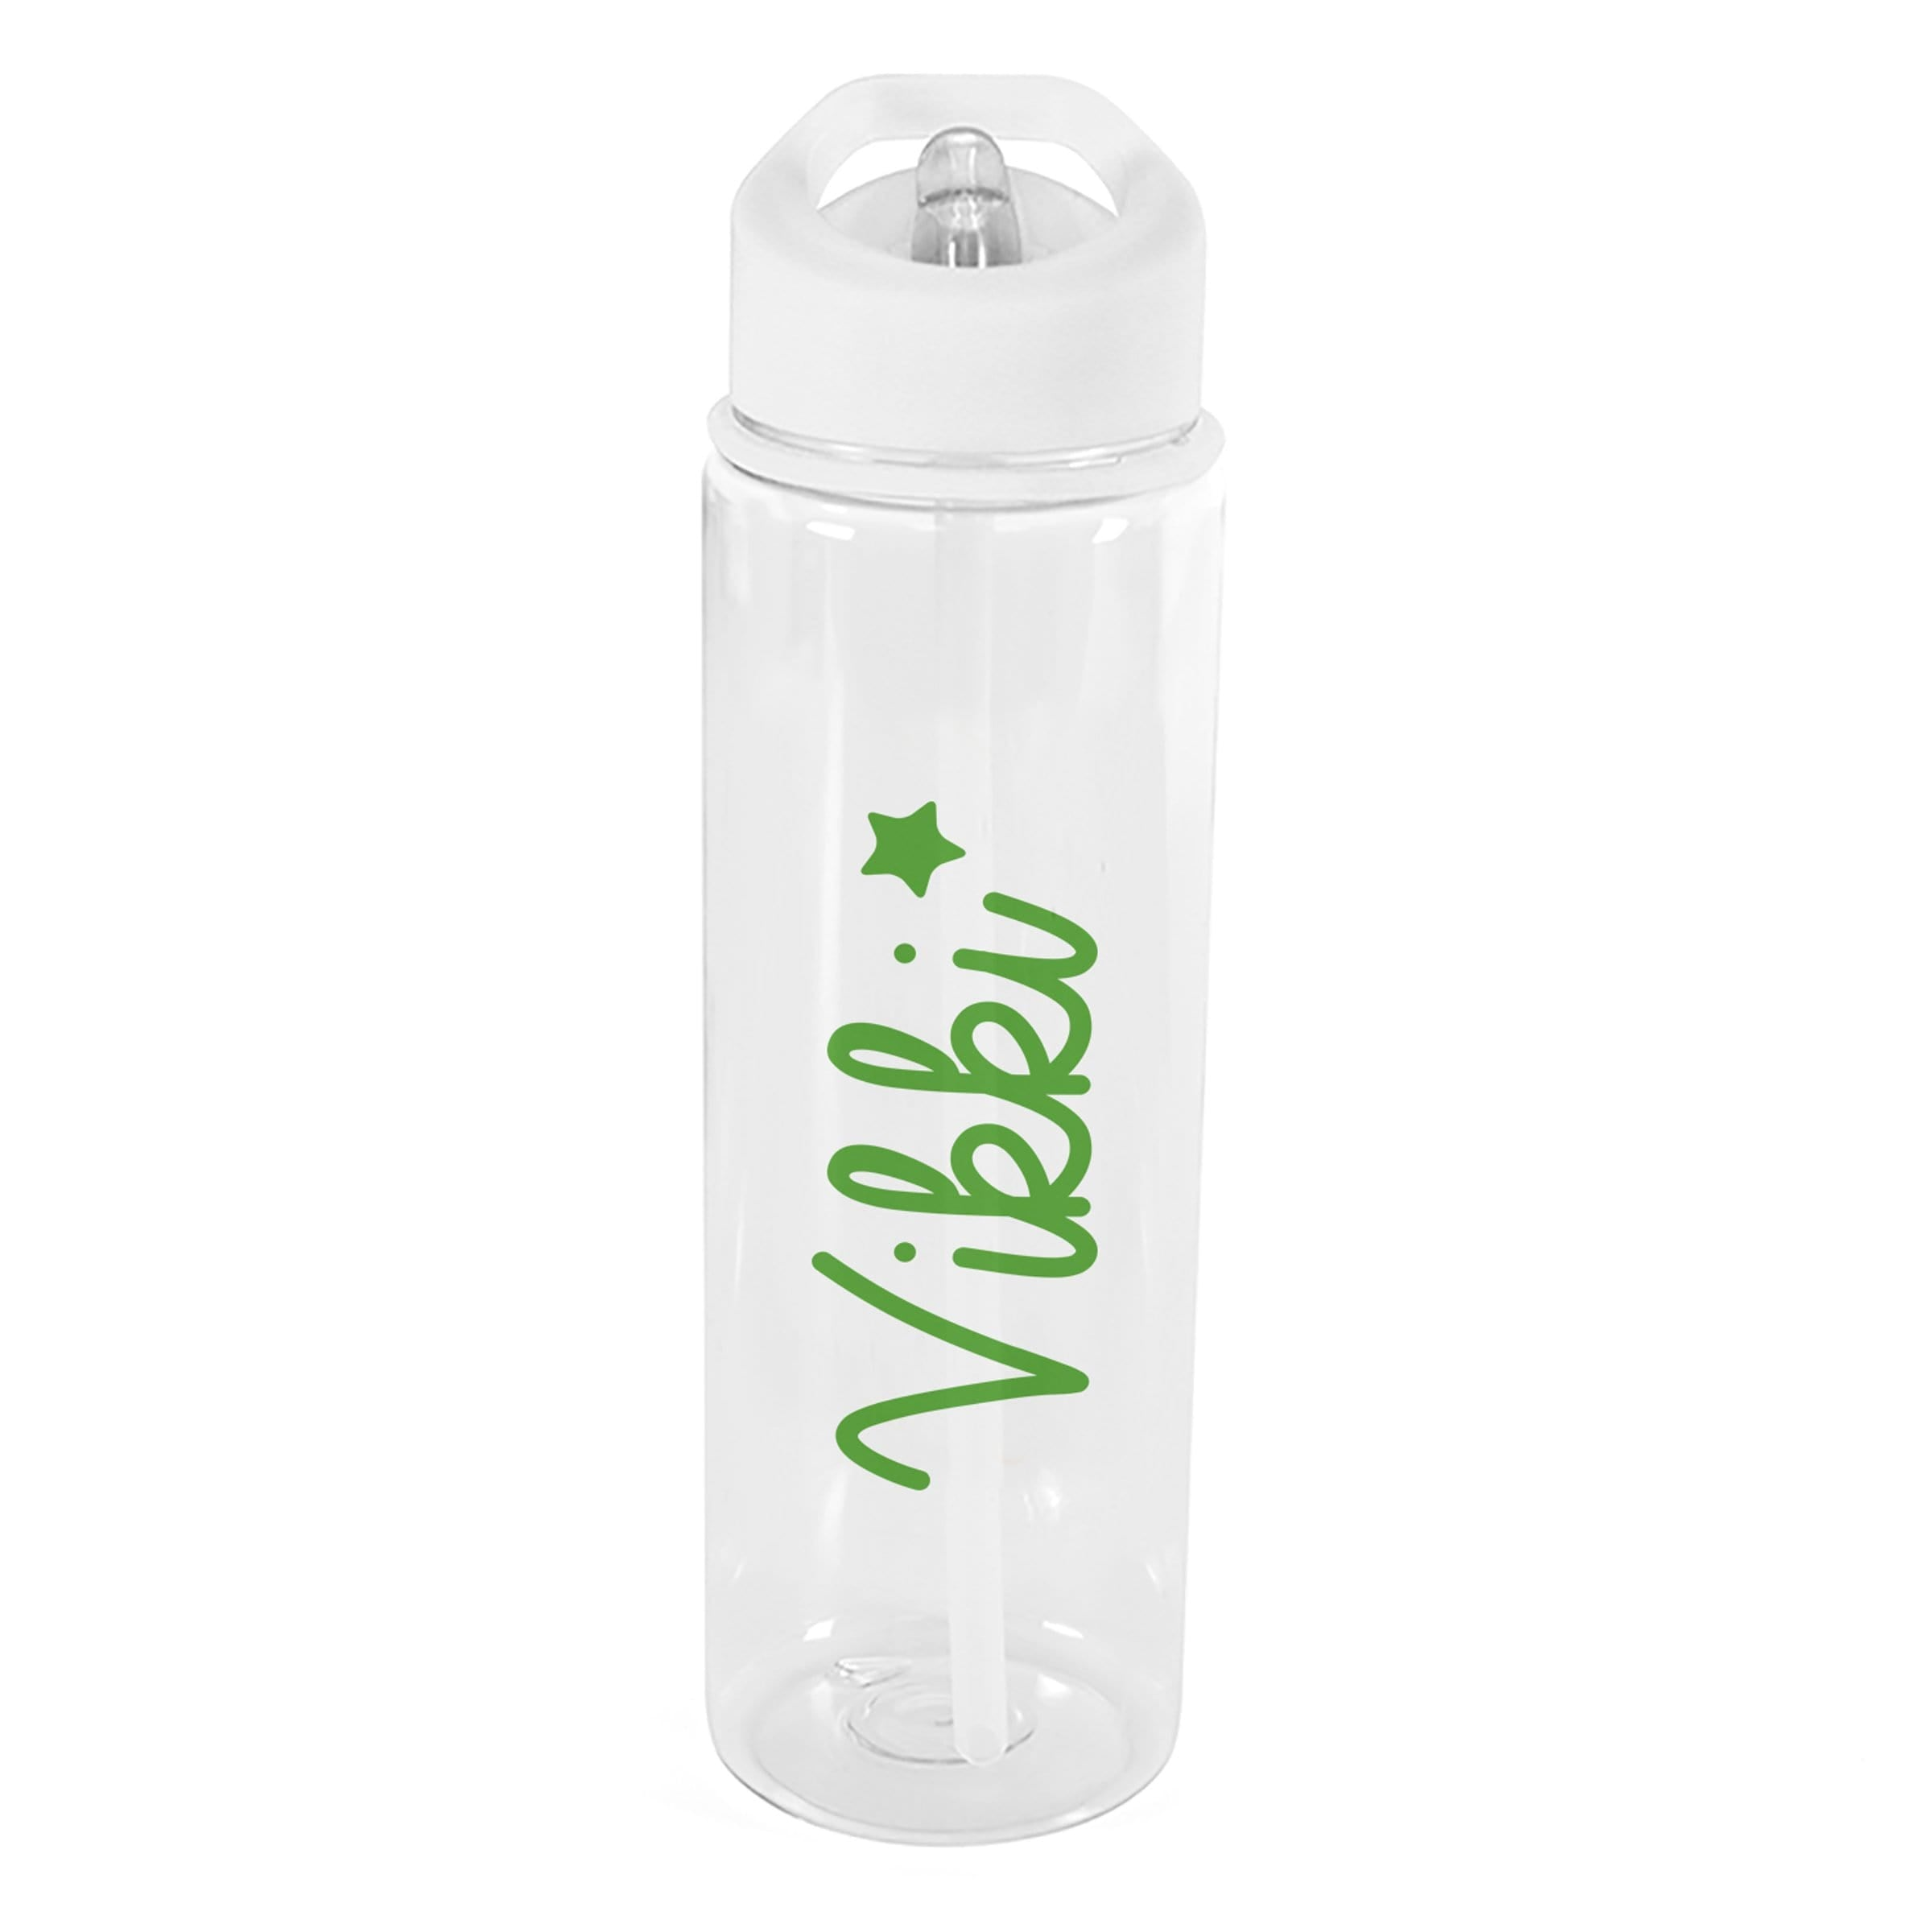 Green Star Transparent Water Bottle - stamptastic-uk